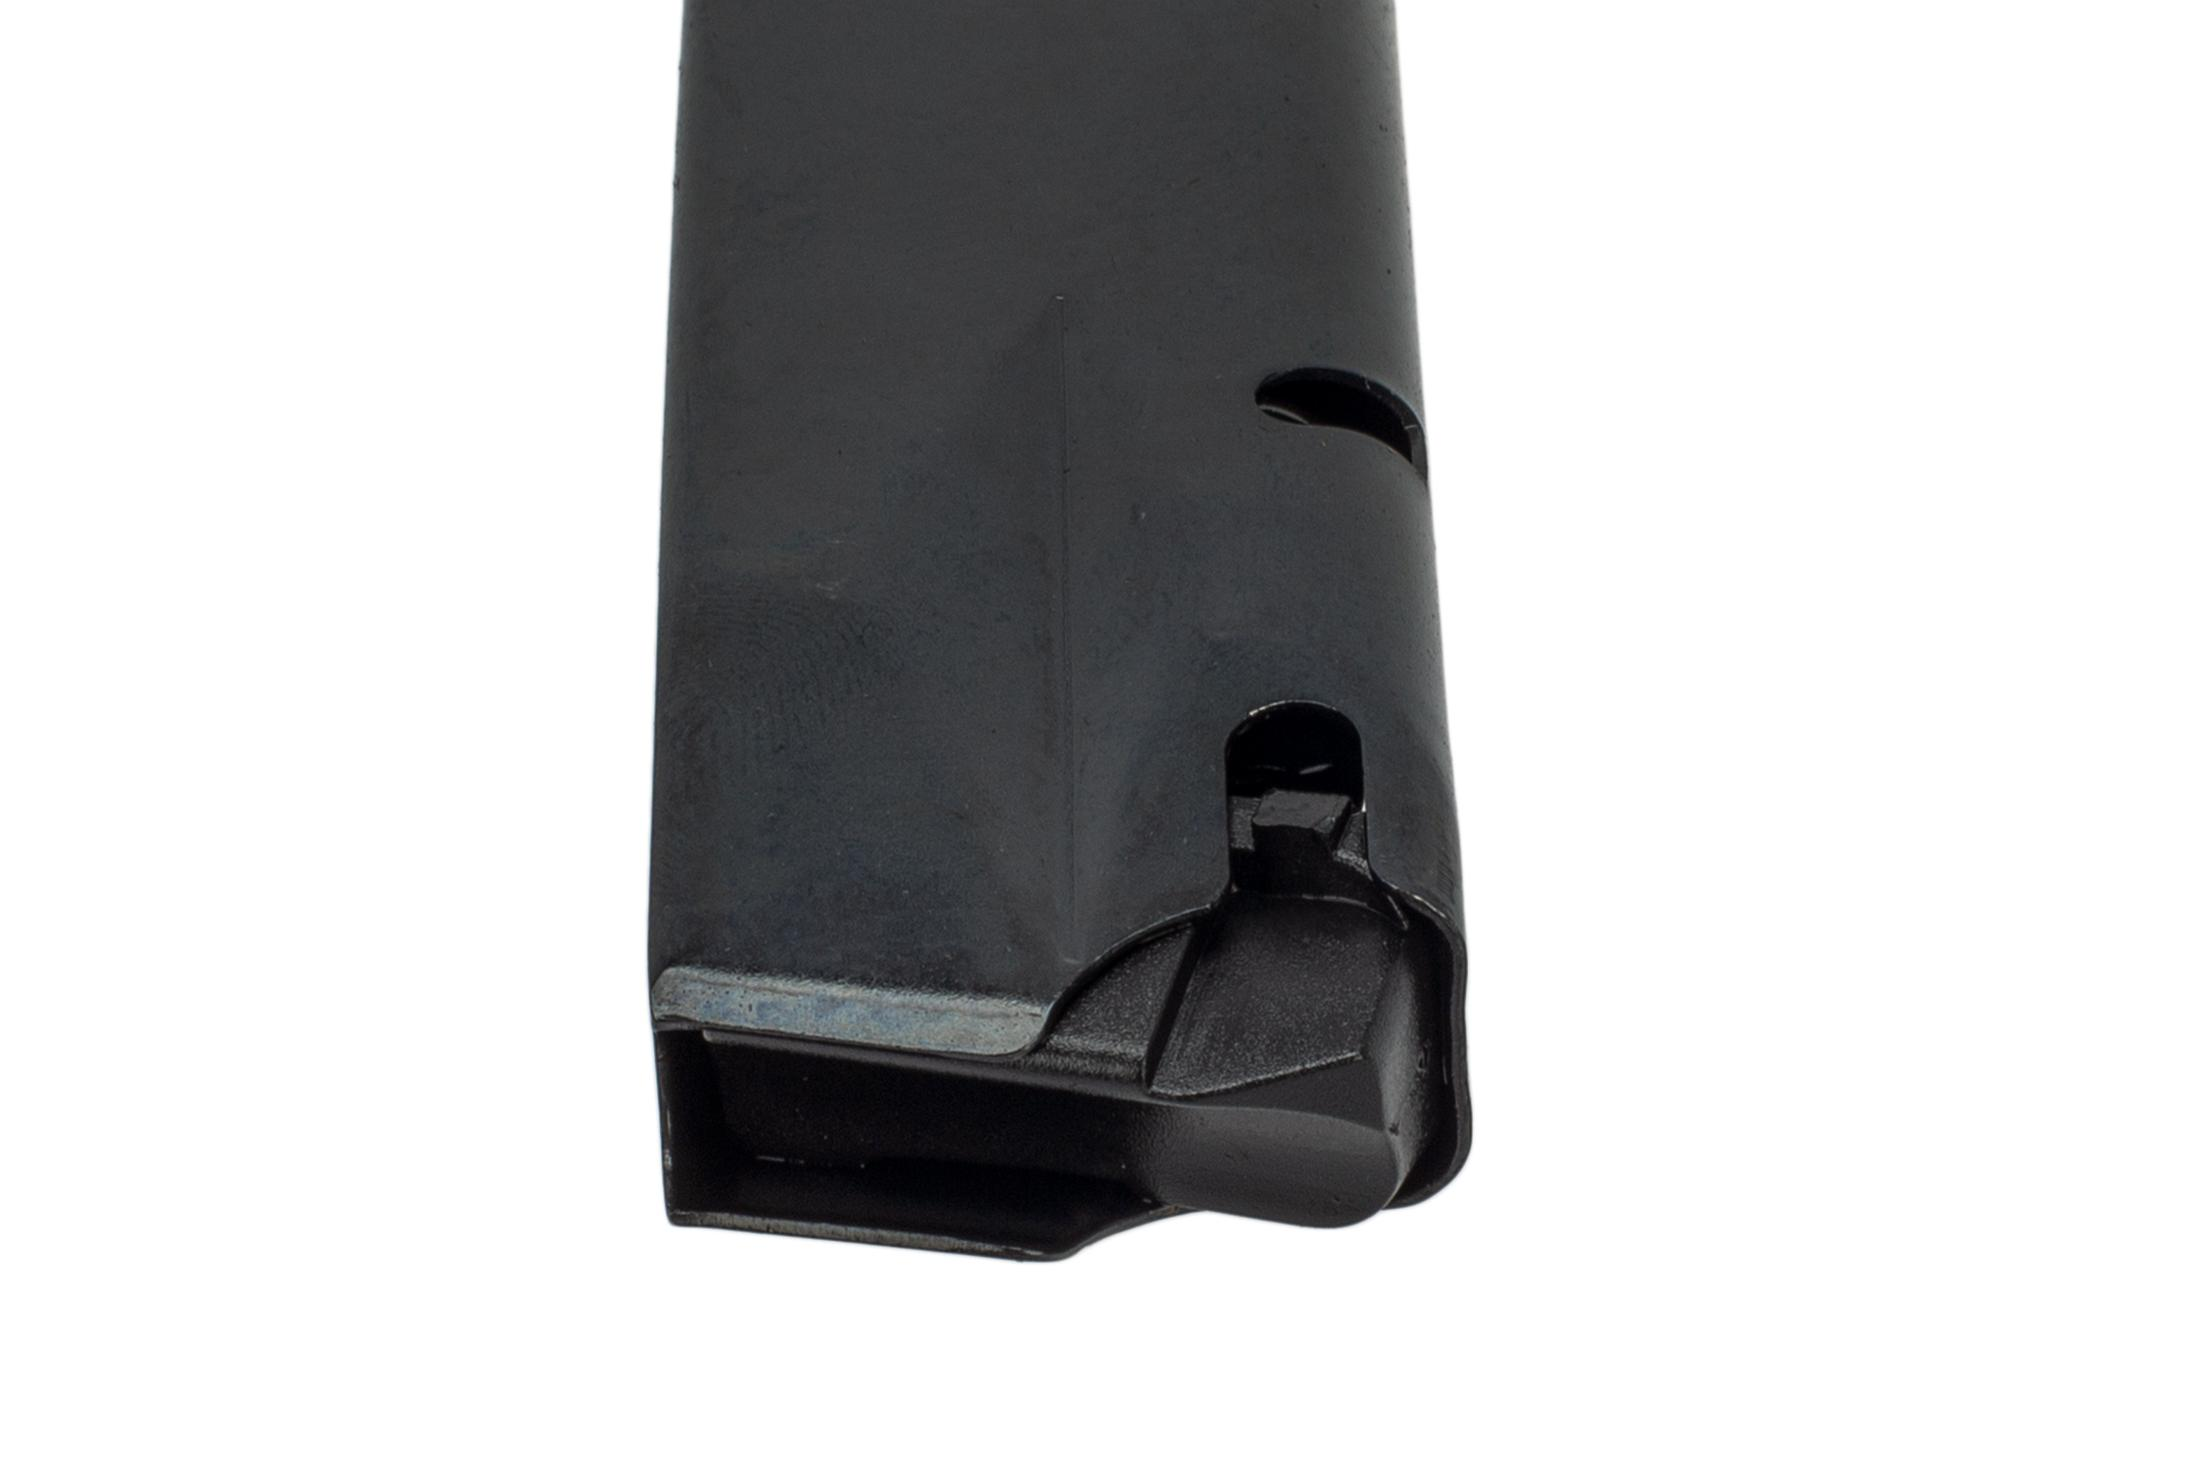 ProMag TP9 18 round magazine features steel feed lips